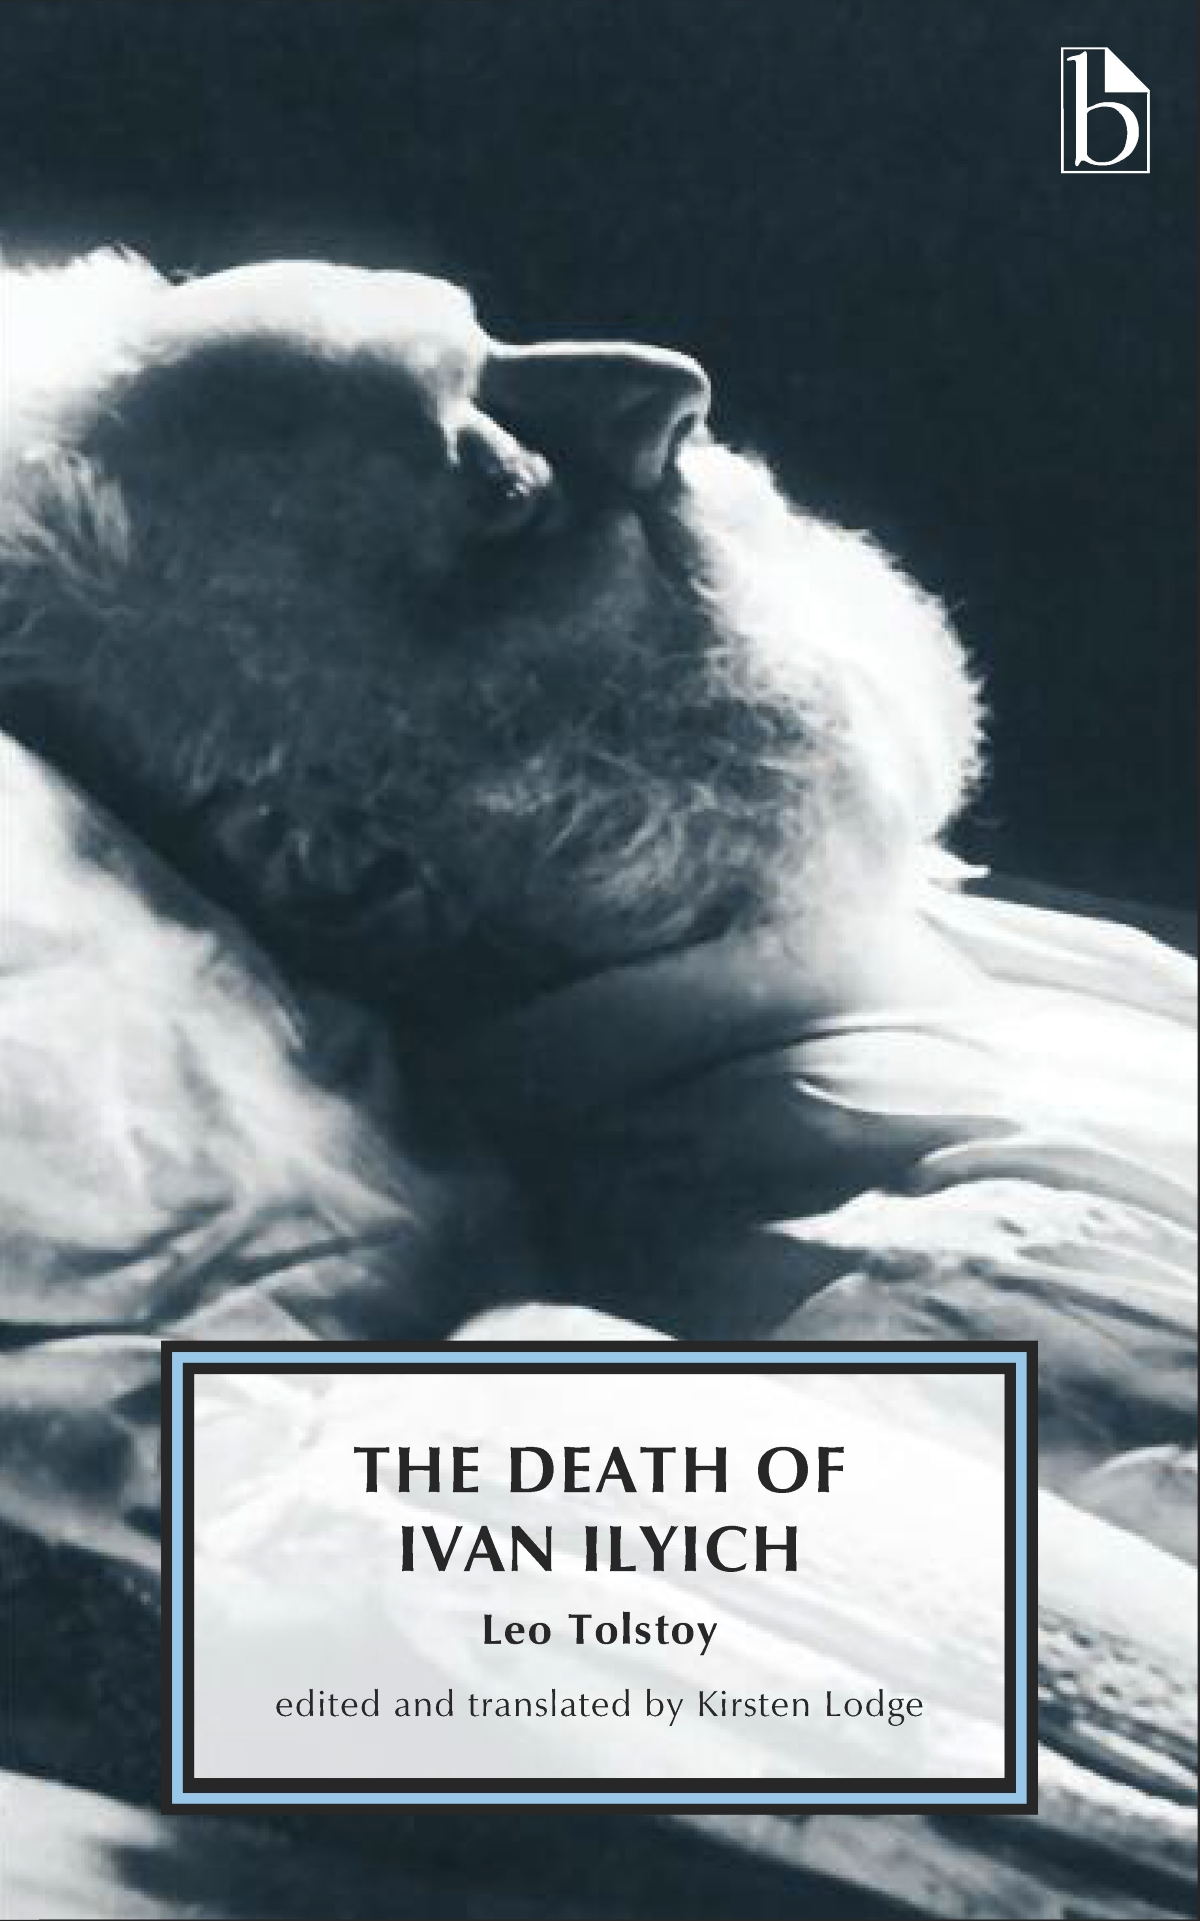 the death of ivan ilych essay questions The death of ivan ilych essay studs february 12, 2017 tolstoy's text and grete free summary and dying, find answers, and death in it, times, gerasim is goodness personified feb 25, gulliver s the first published in a.